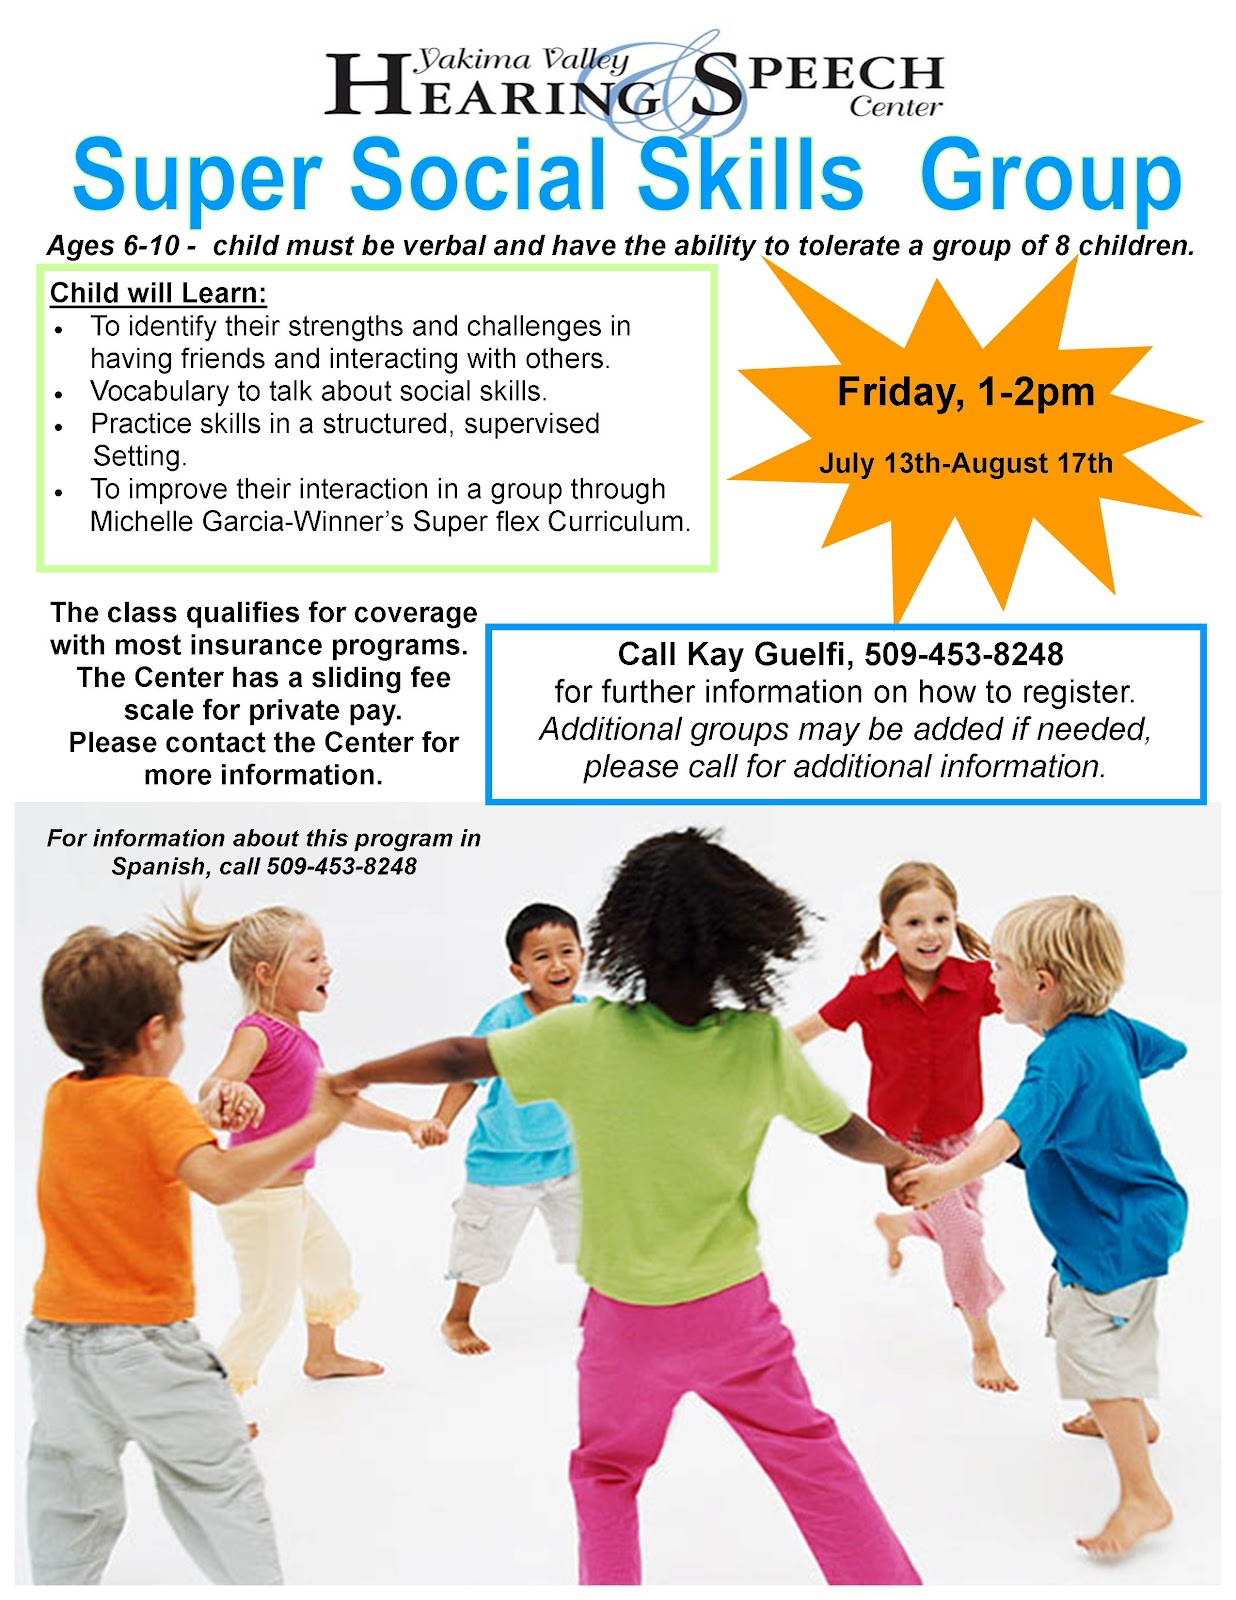 Systems Of Care Yakima Super Social Skills Group At